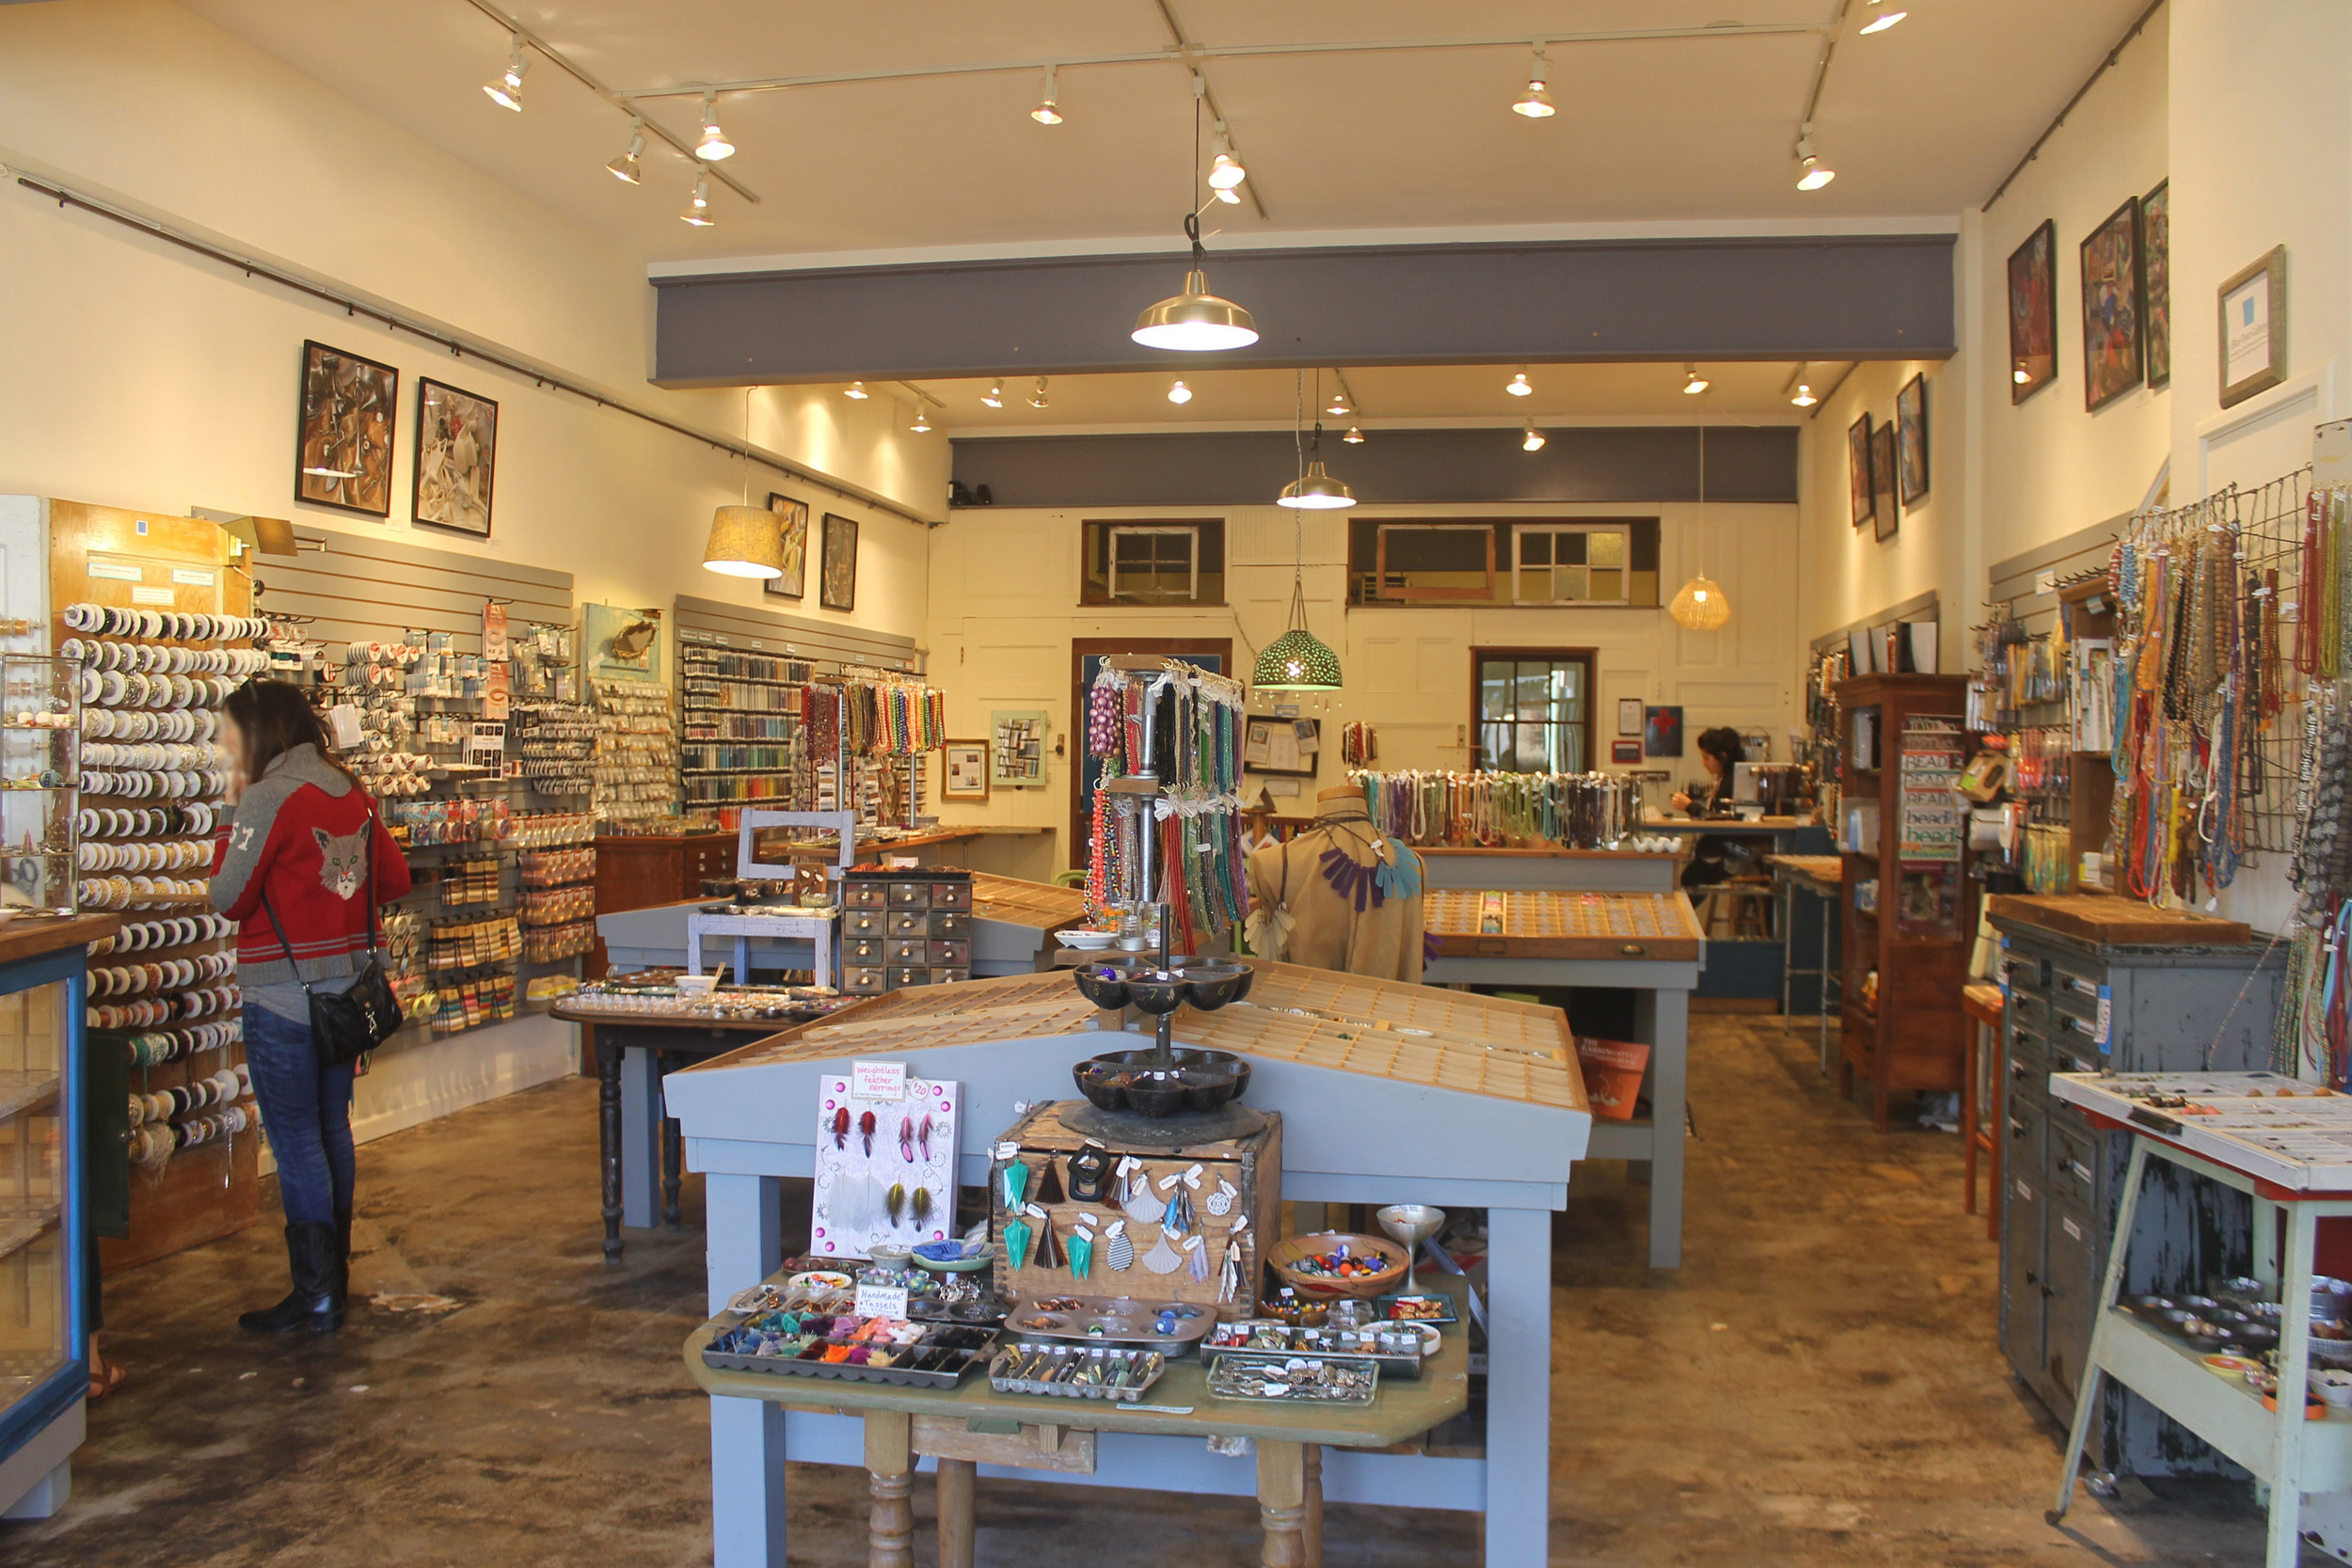 Blue Door Beads' fixture layout makes it easy for customers to navigate through the store.